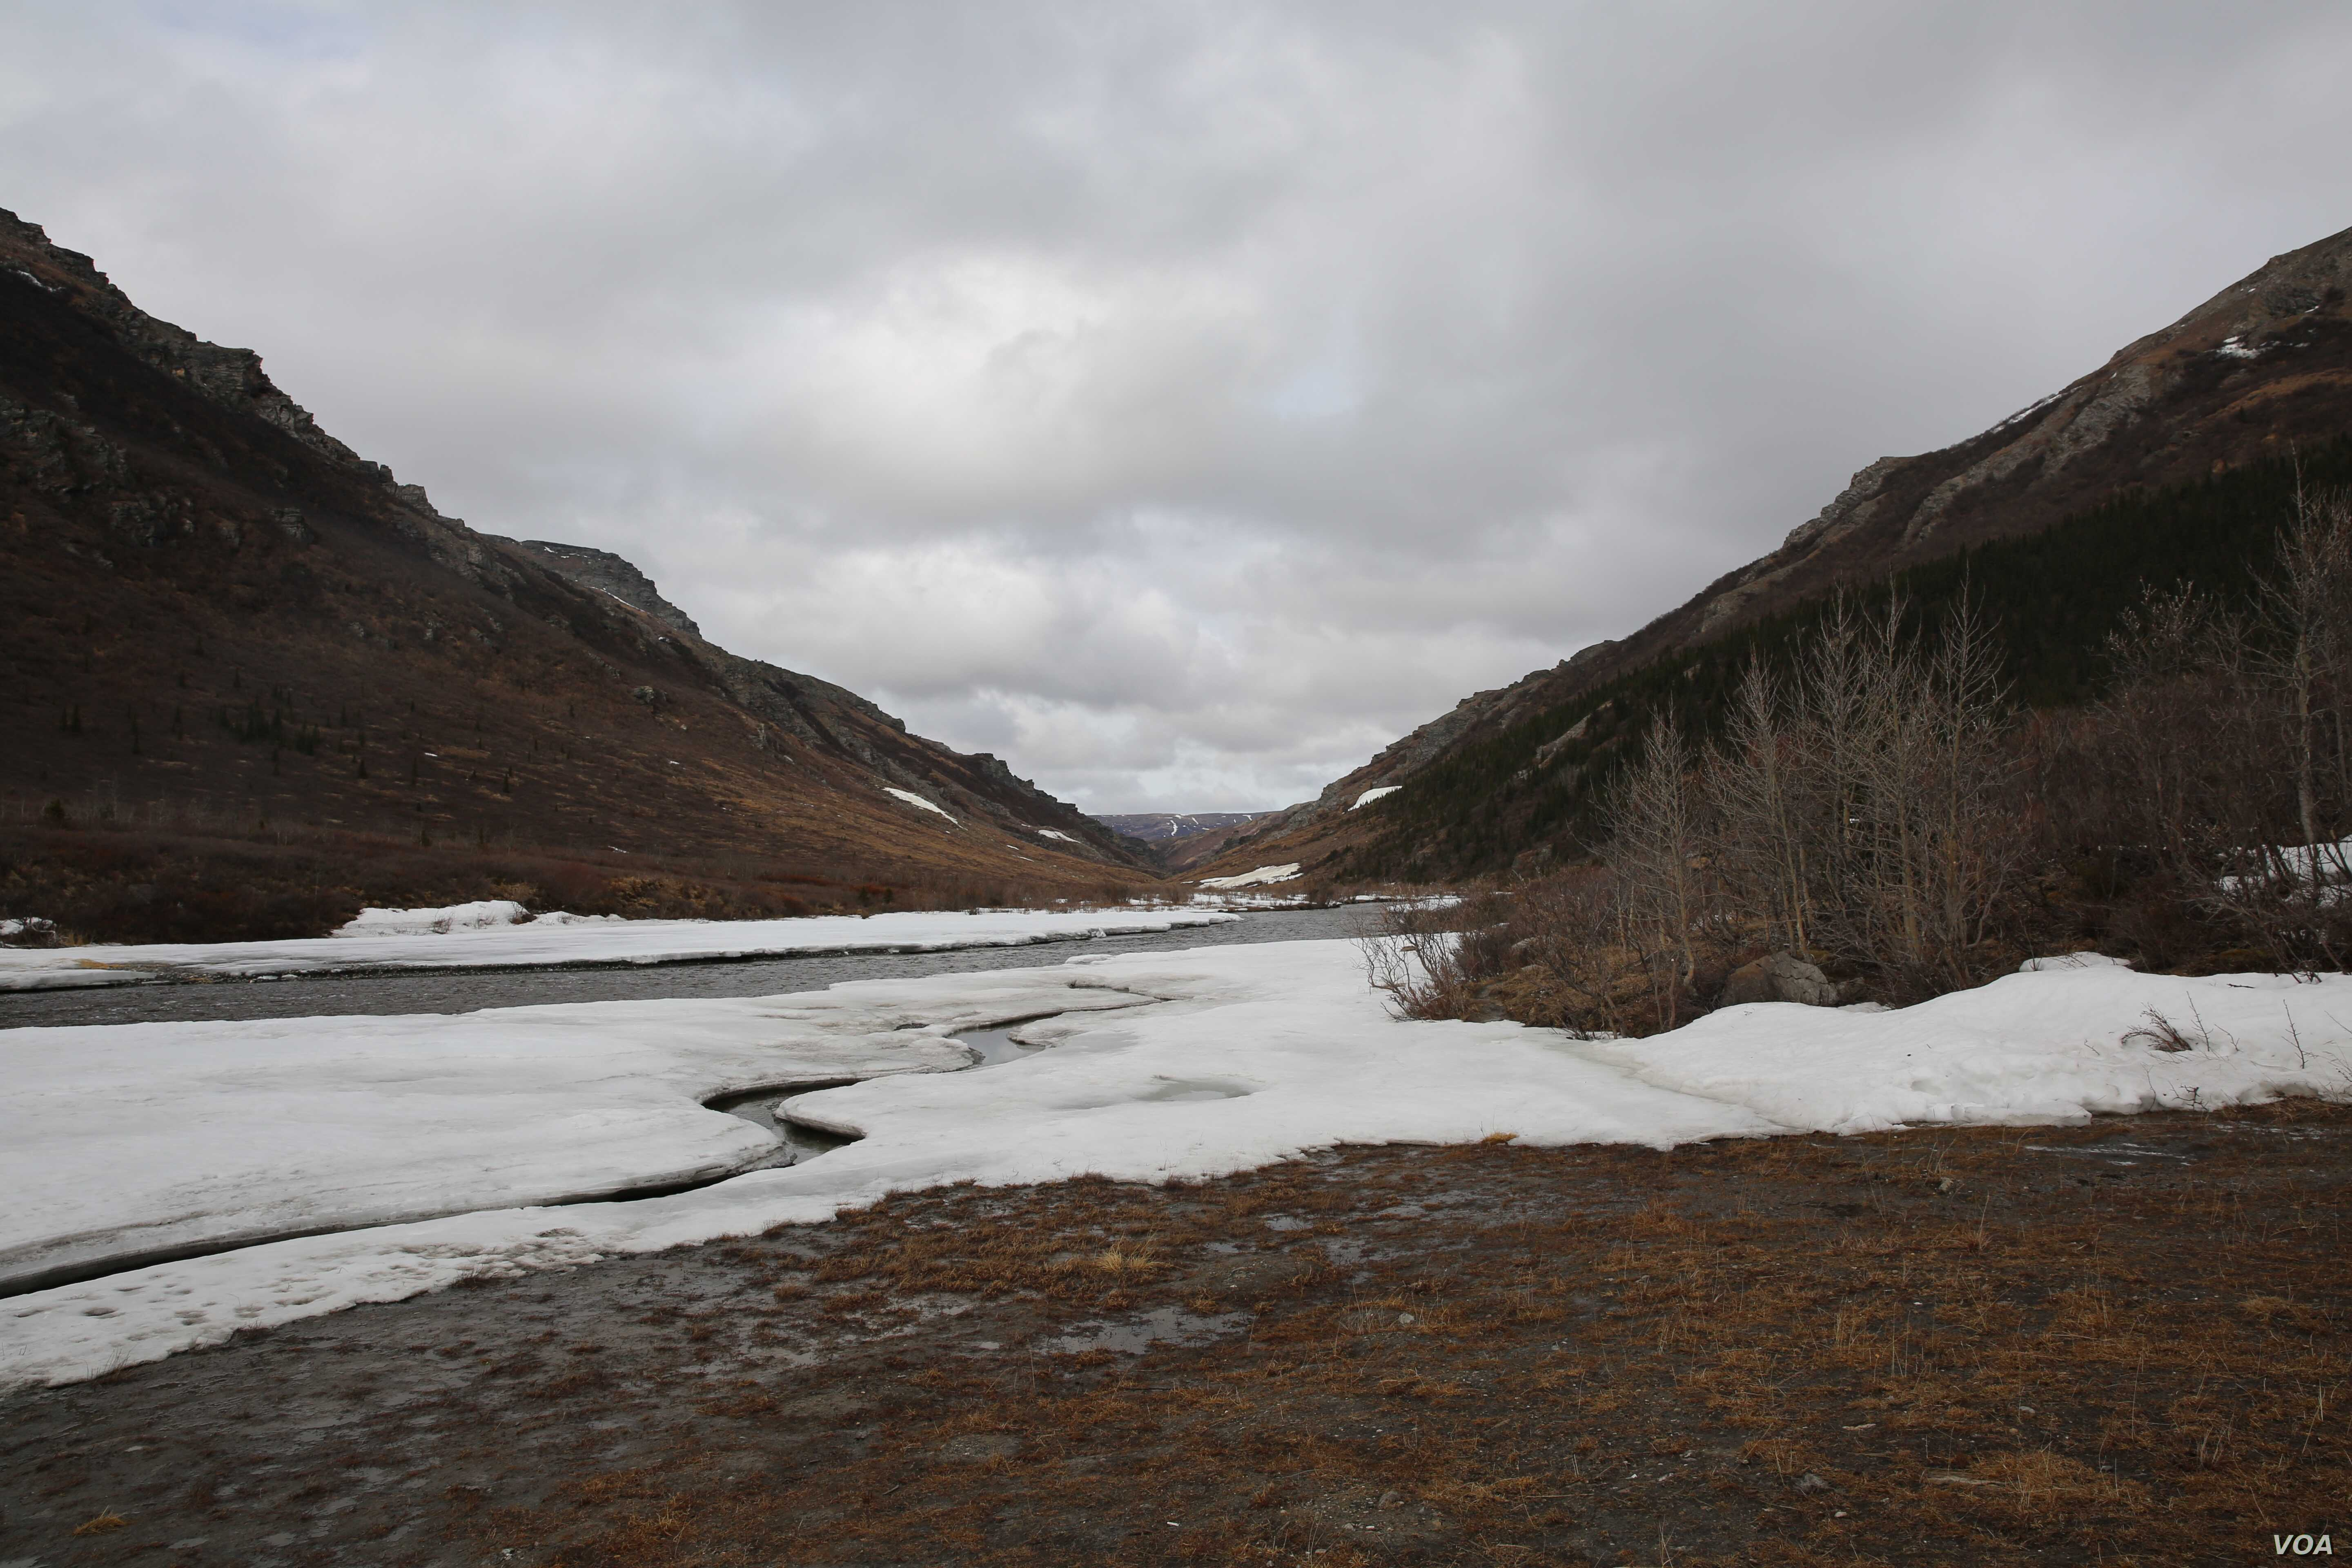 A view of the Braided River in Denali National Park in Alaska, May 10, 2017. The eight-member Arctic Council meets in Fairbanks beginning Thursday, and climate change is high on the agenda for the foreign ministers attending.